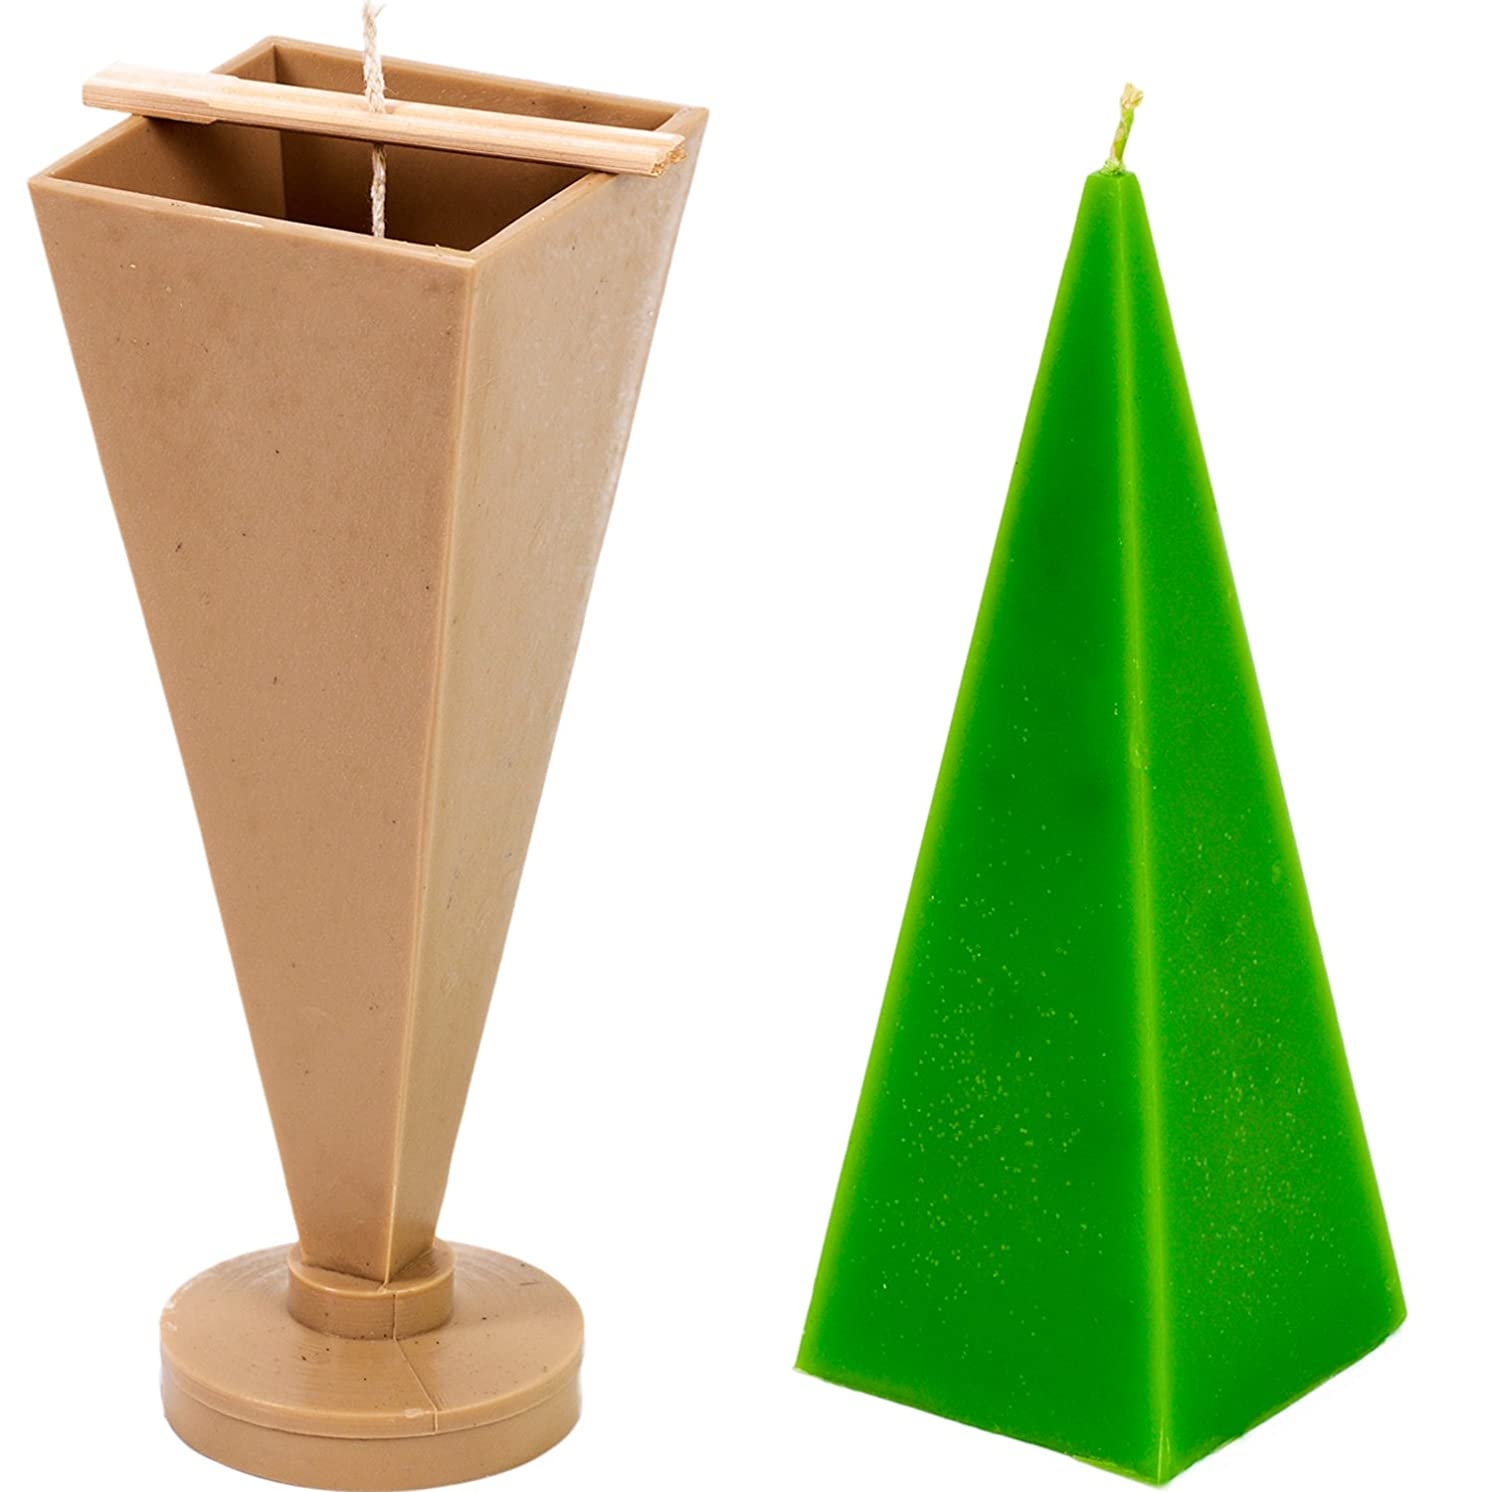 Pyramid Taper Mold - Height: 8.8 in, Width: 2.7 in - 30 ft. of Wick Included as a Gift - Plastic Candle molds for Making Candles